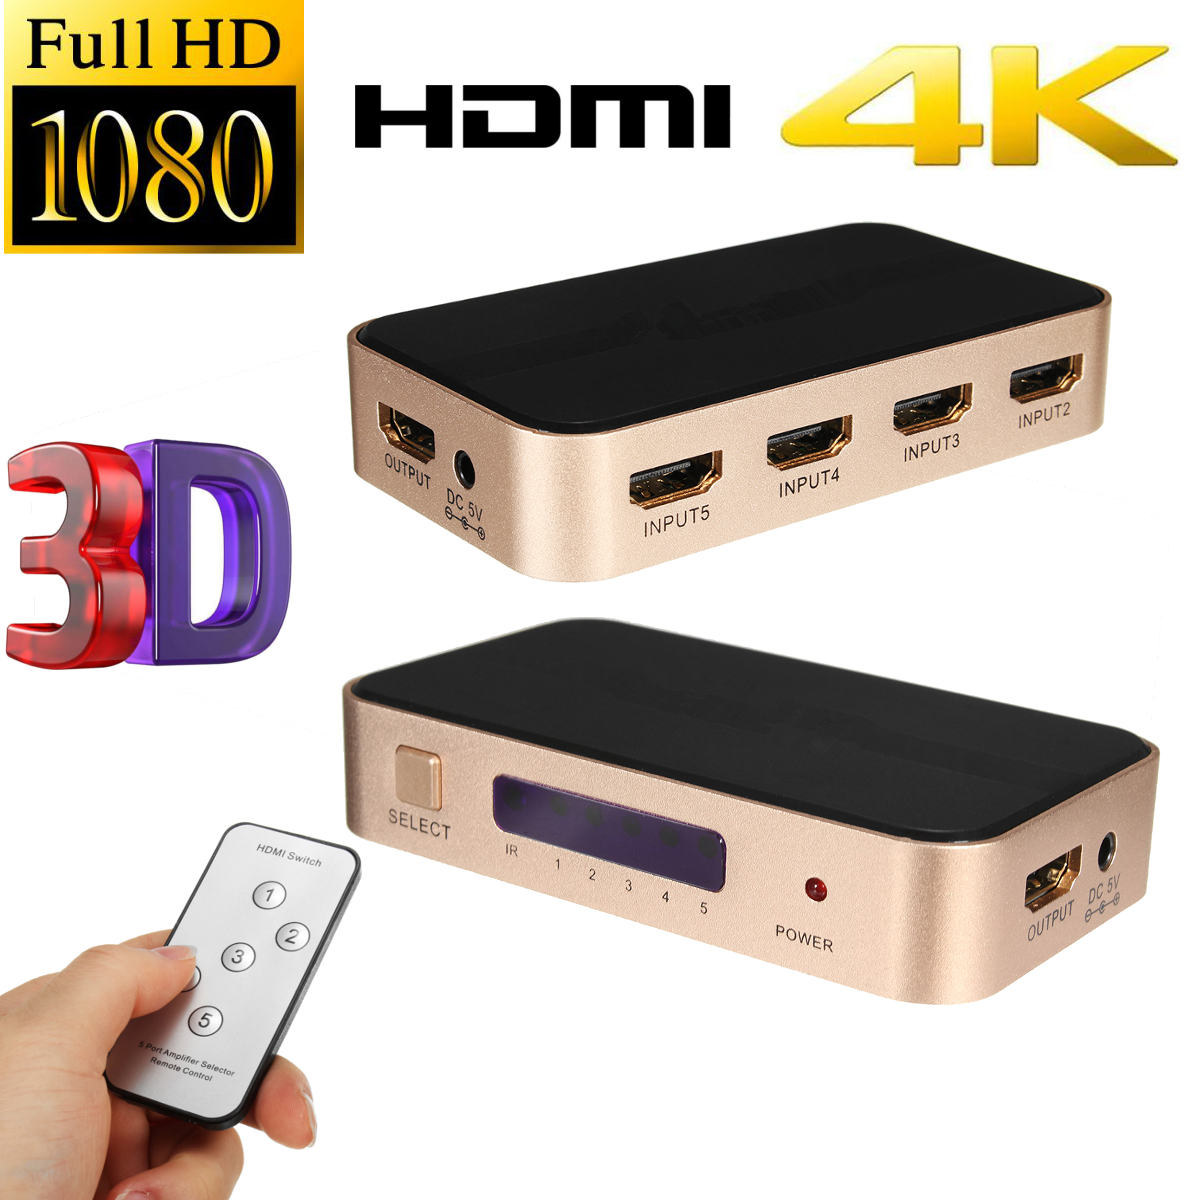 5 Port 5x1 Full HD 1080P HDMI 1.4 10.2 Gbps 3D HDMI Switch Switcher Selector Splitter With Remote For HDTV For PS3 full 1080p hdmi 4x1 multi viewer with hdmi switcher perfect quad screen real time drop shipping 1108